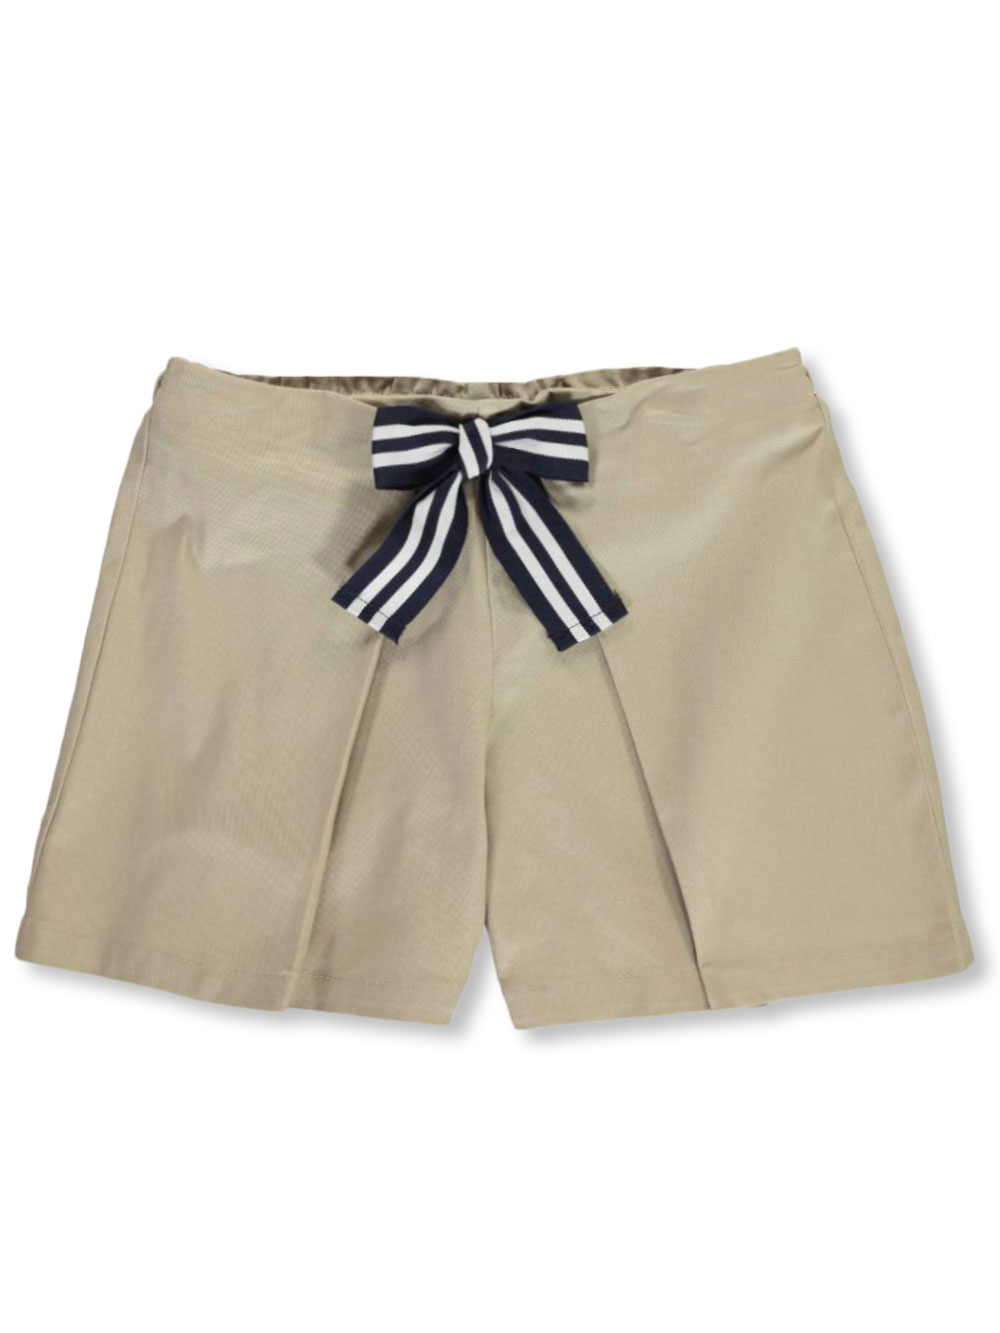 Shorts and Skorts Bow Accent